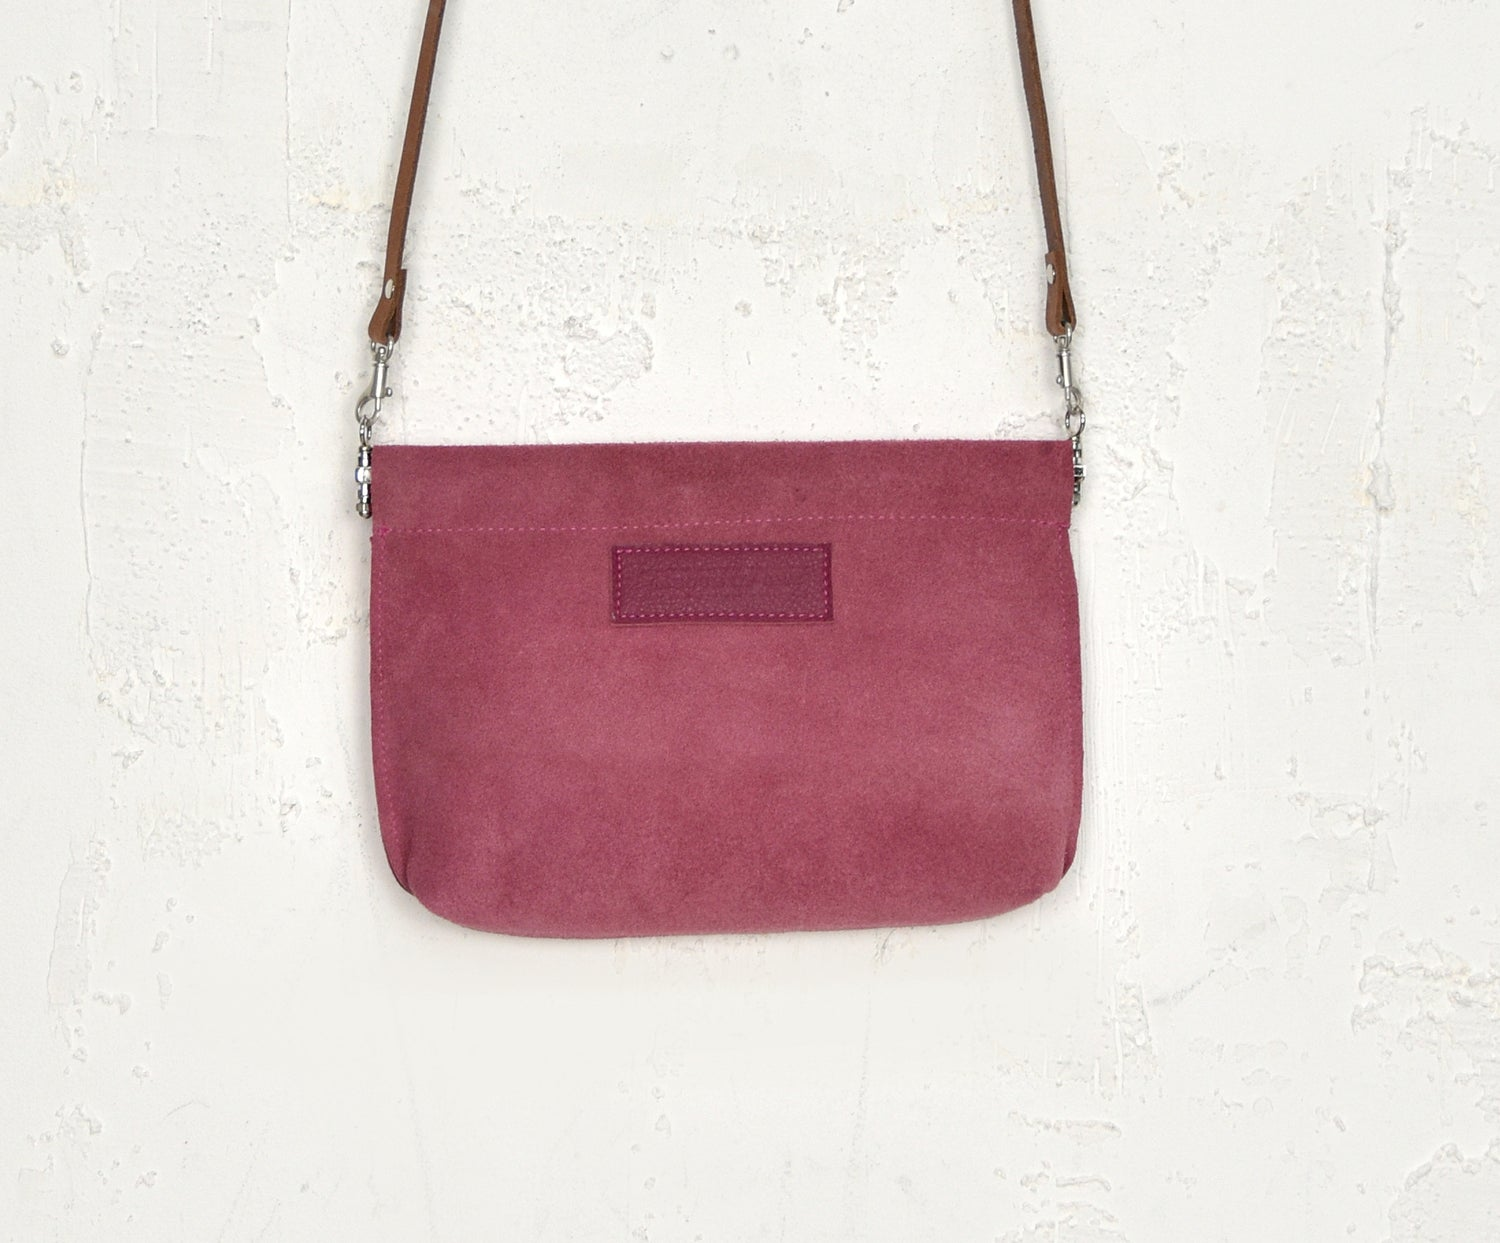 Image of Soft Rose Suede Leather Purse, Tactile Red Clip Frame Pouch